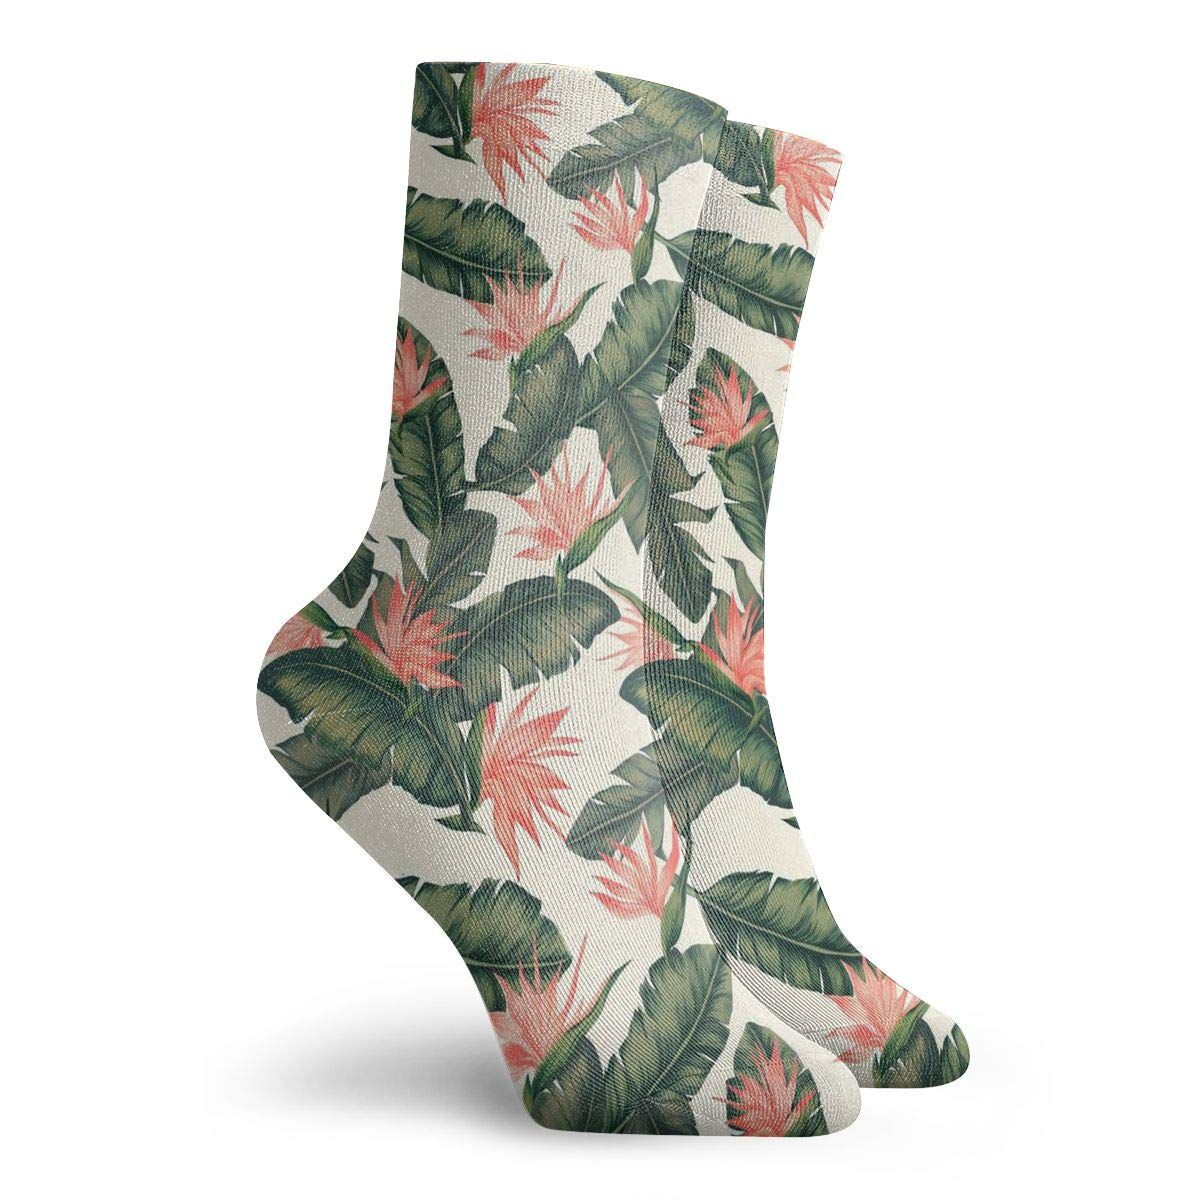 Feather Green Unisex Funny Casual Crew Socks Athletic Socks For Boys Girls Kids Teenagers